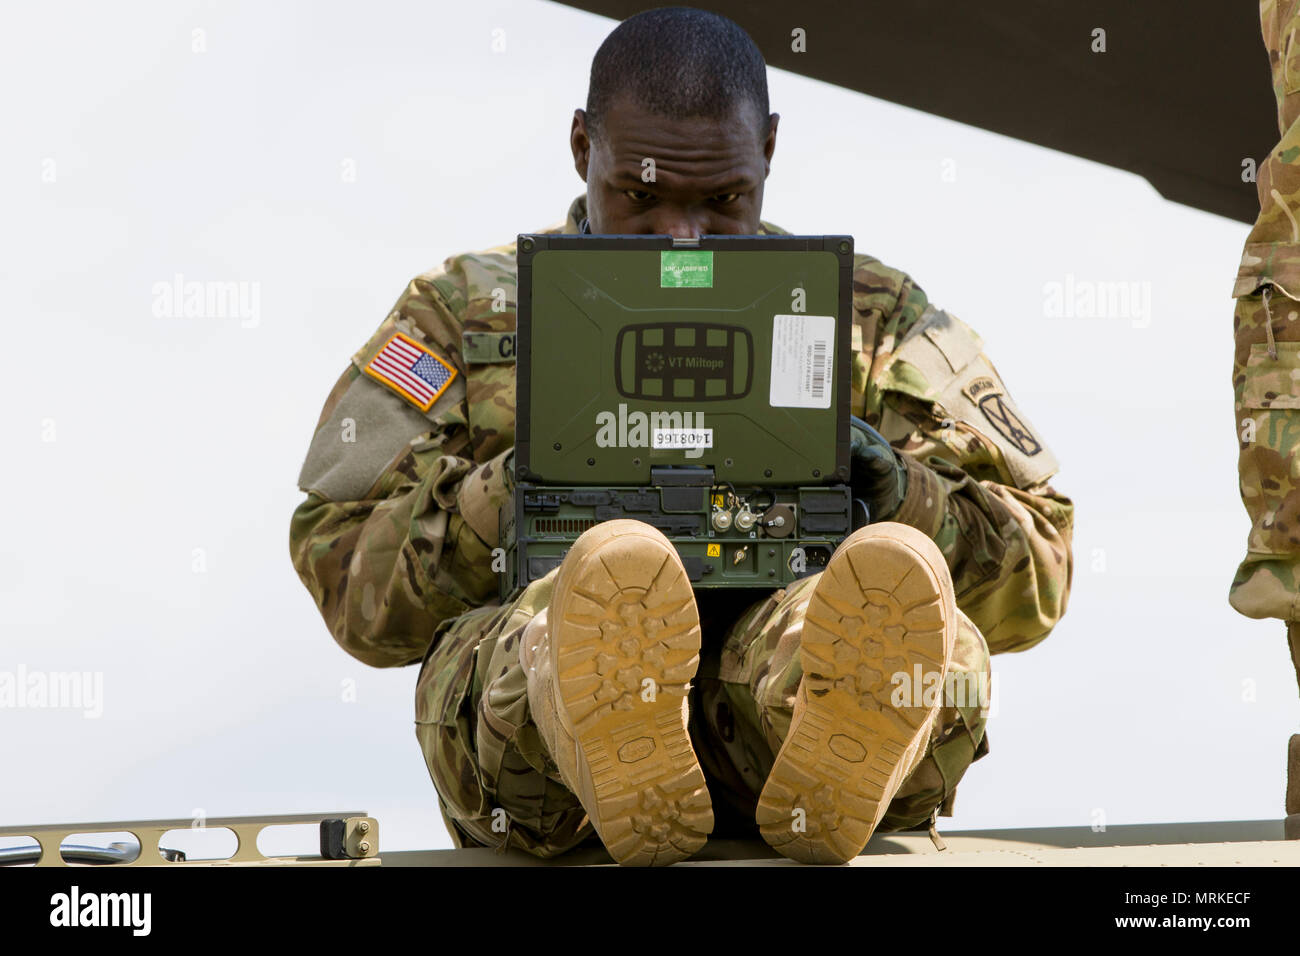 A Soldier from D Company, 3-10 General Support Aviation Battalion, refers to repair procedures during the replacement of the aft yoke in a CH-47 Chinook helicopter at Lielvarde, Latvia, on May 19. The highest ranking member of the team was a specialist; empowering junior leaders is imperative to be successful in the spread-out environment of U.S. Army Europe's Atlantic Resolve mission. (U.S. Army photo by Spc. Thomas Scaggs) 170519-A-TZ475-037 - Stock Image